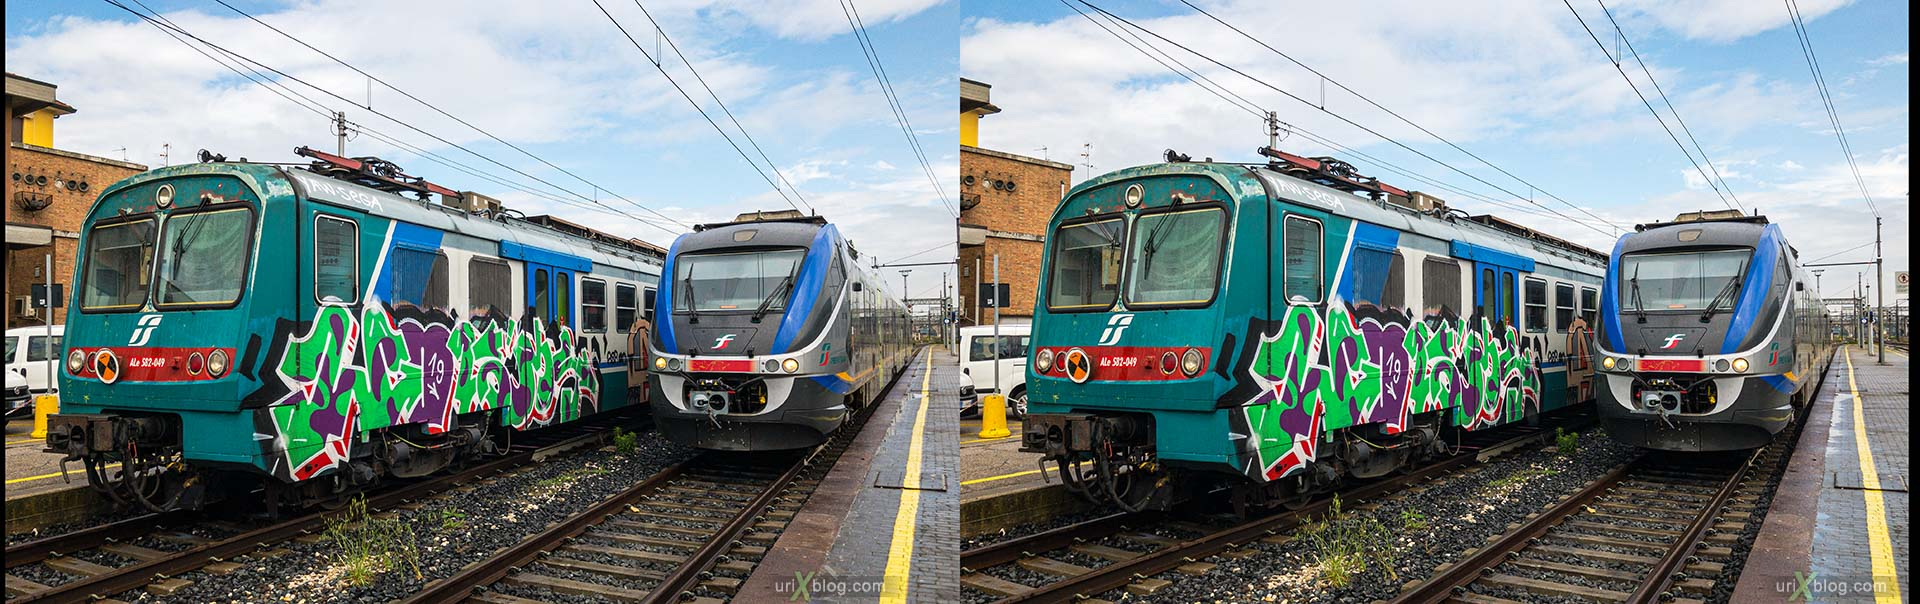 Ravenna, train station, train, electric locomotive, Italy, 3D, stereo pair, cross-eyed, crossview, cross view stereo pair, stereoscopic